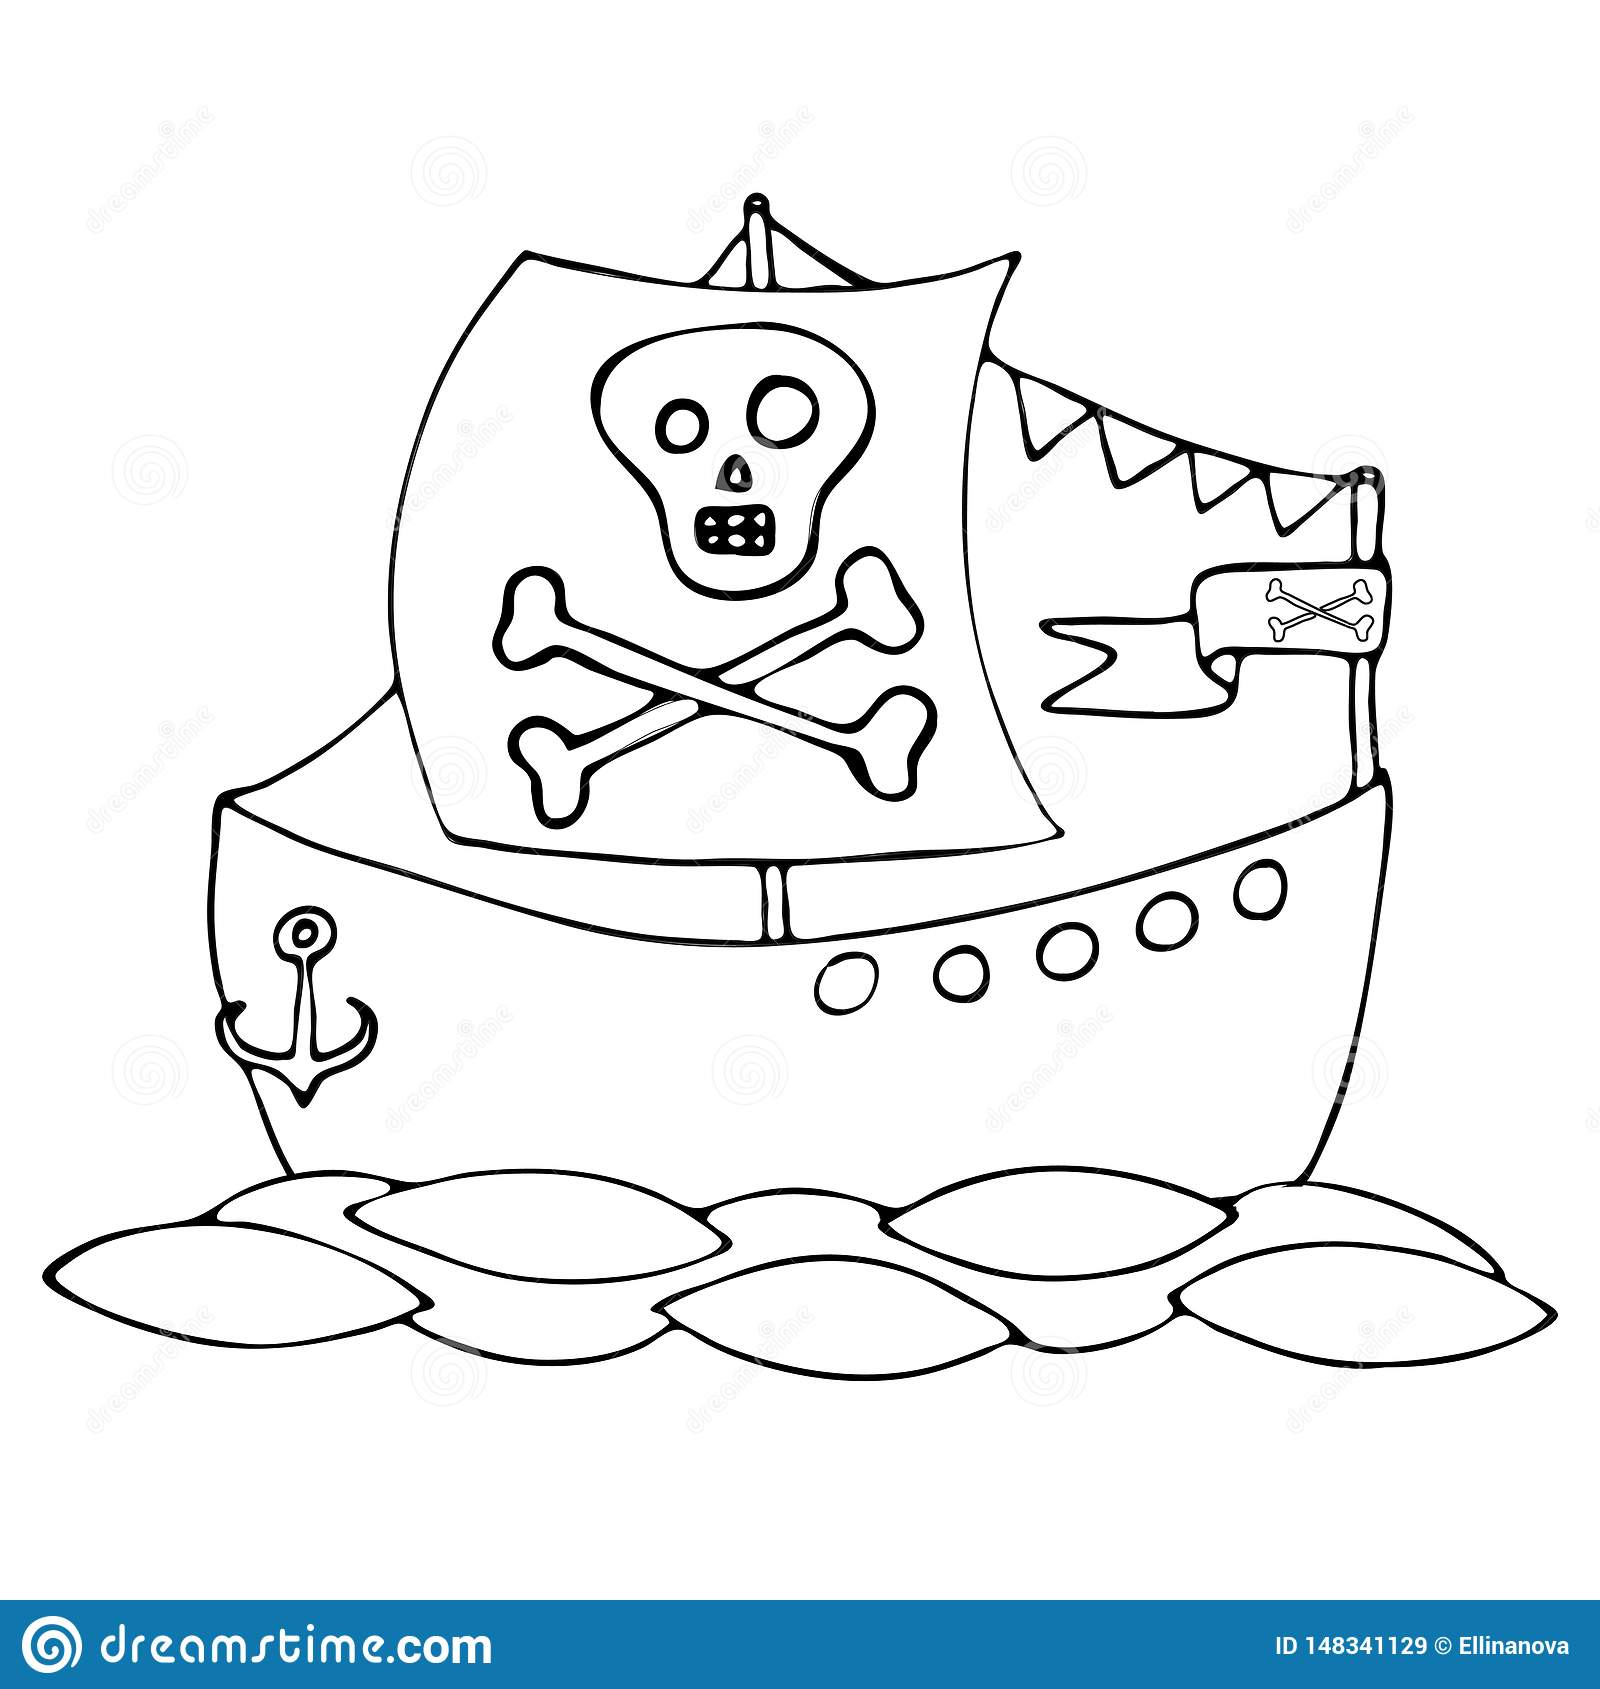 Free Free Coloring Pages Pirates, Download Free Clip Art, Free ... | 1689x1600